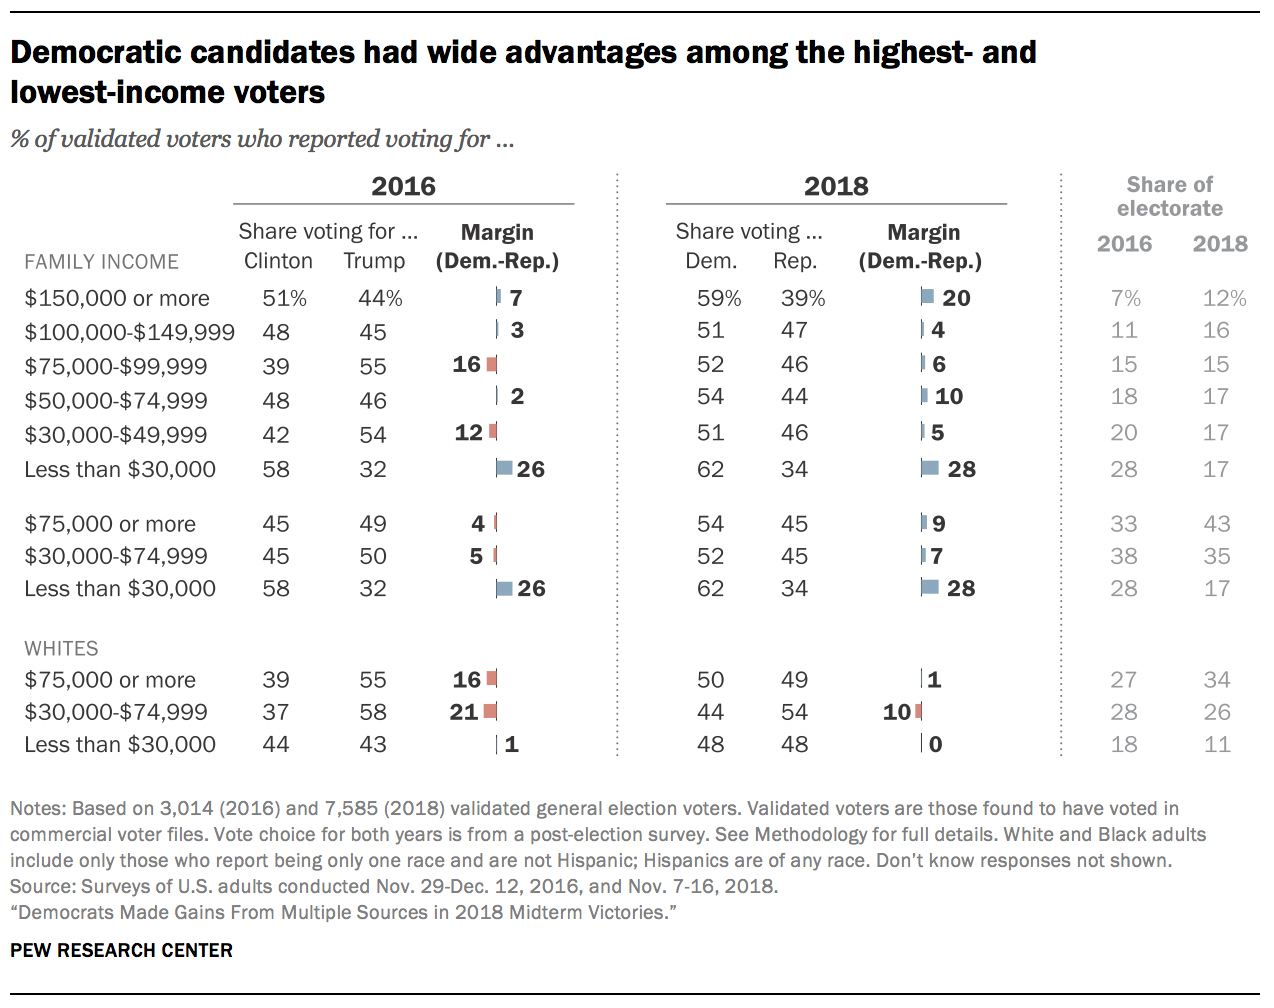 Democratic candidates had wide advantages among the highest- and lowest-income voters